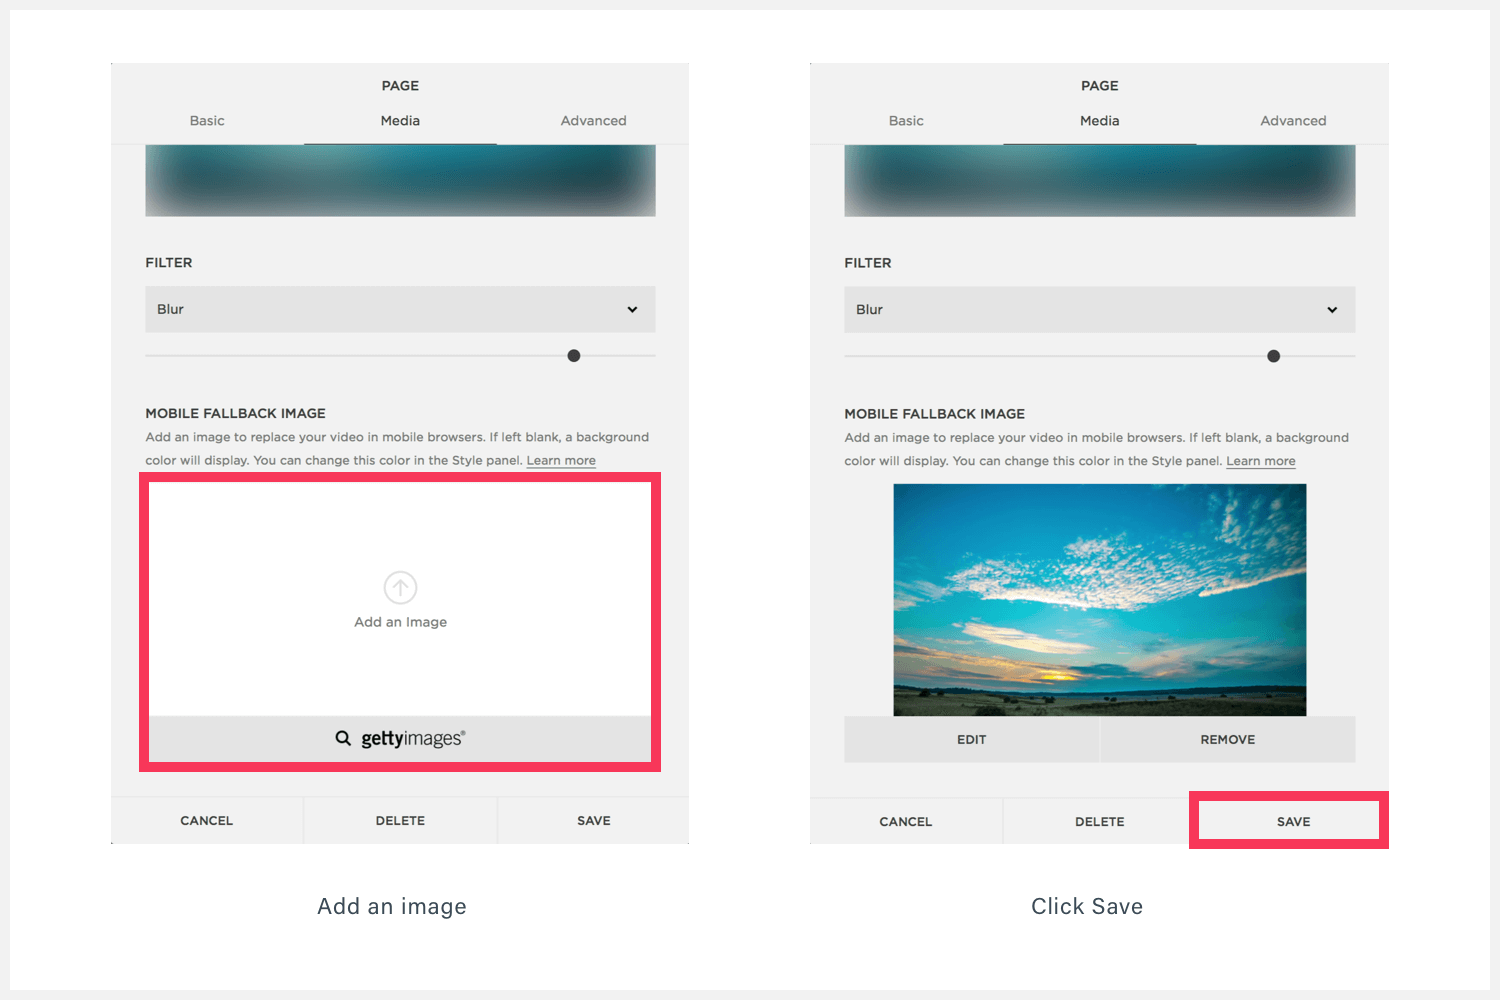 how to add a mobile fallback image on Squarespace